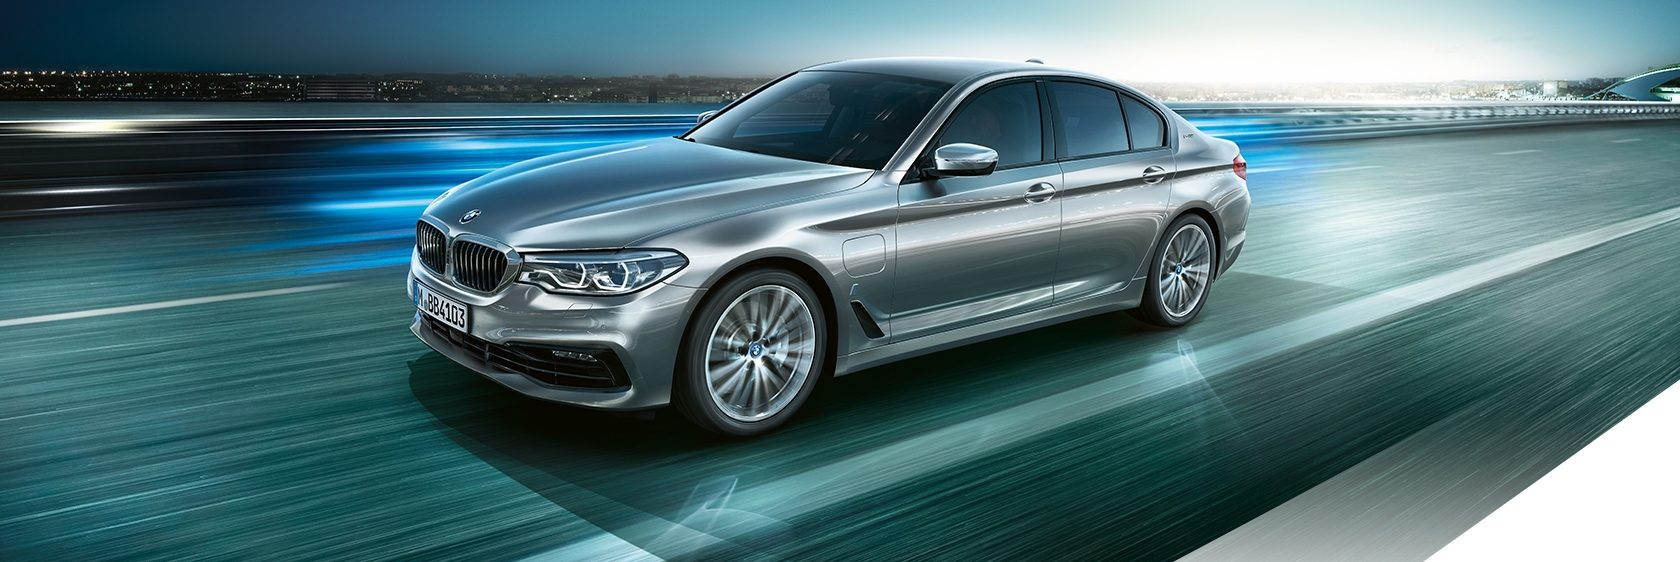 BMW 530e Plug-in Hybrid driving on a futuristic road